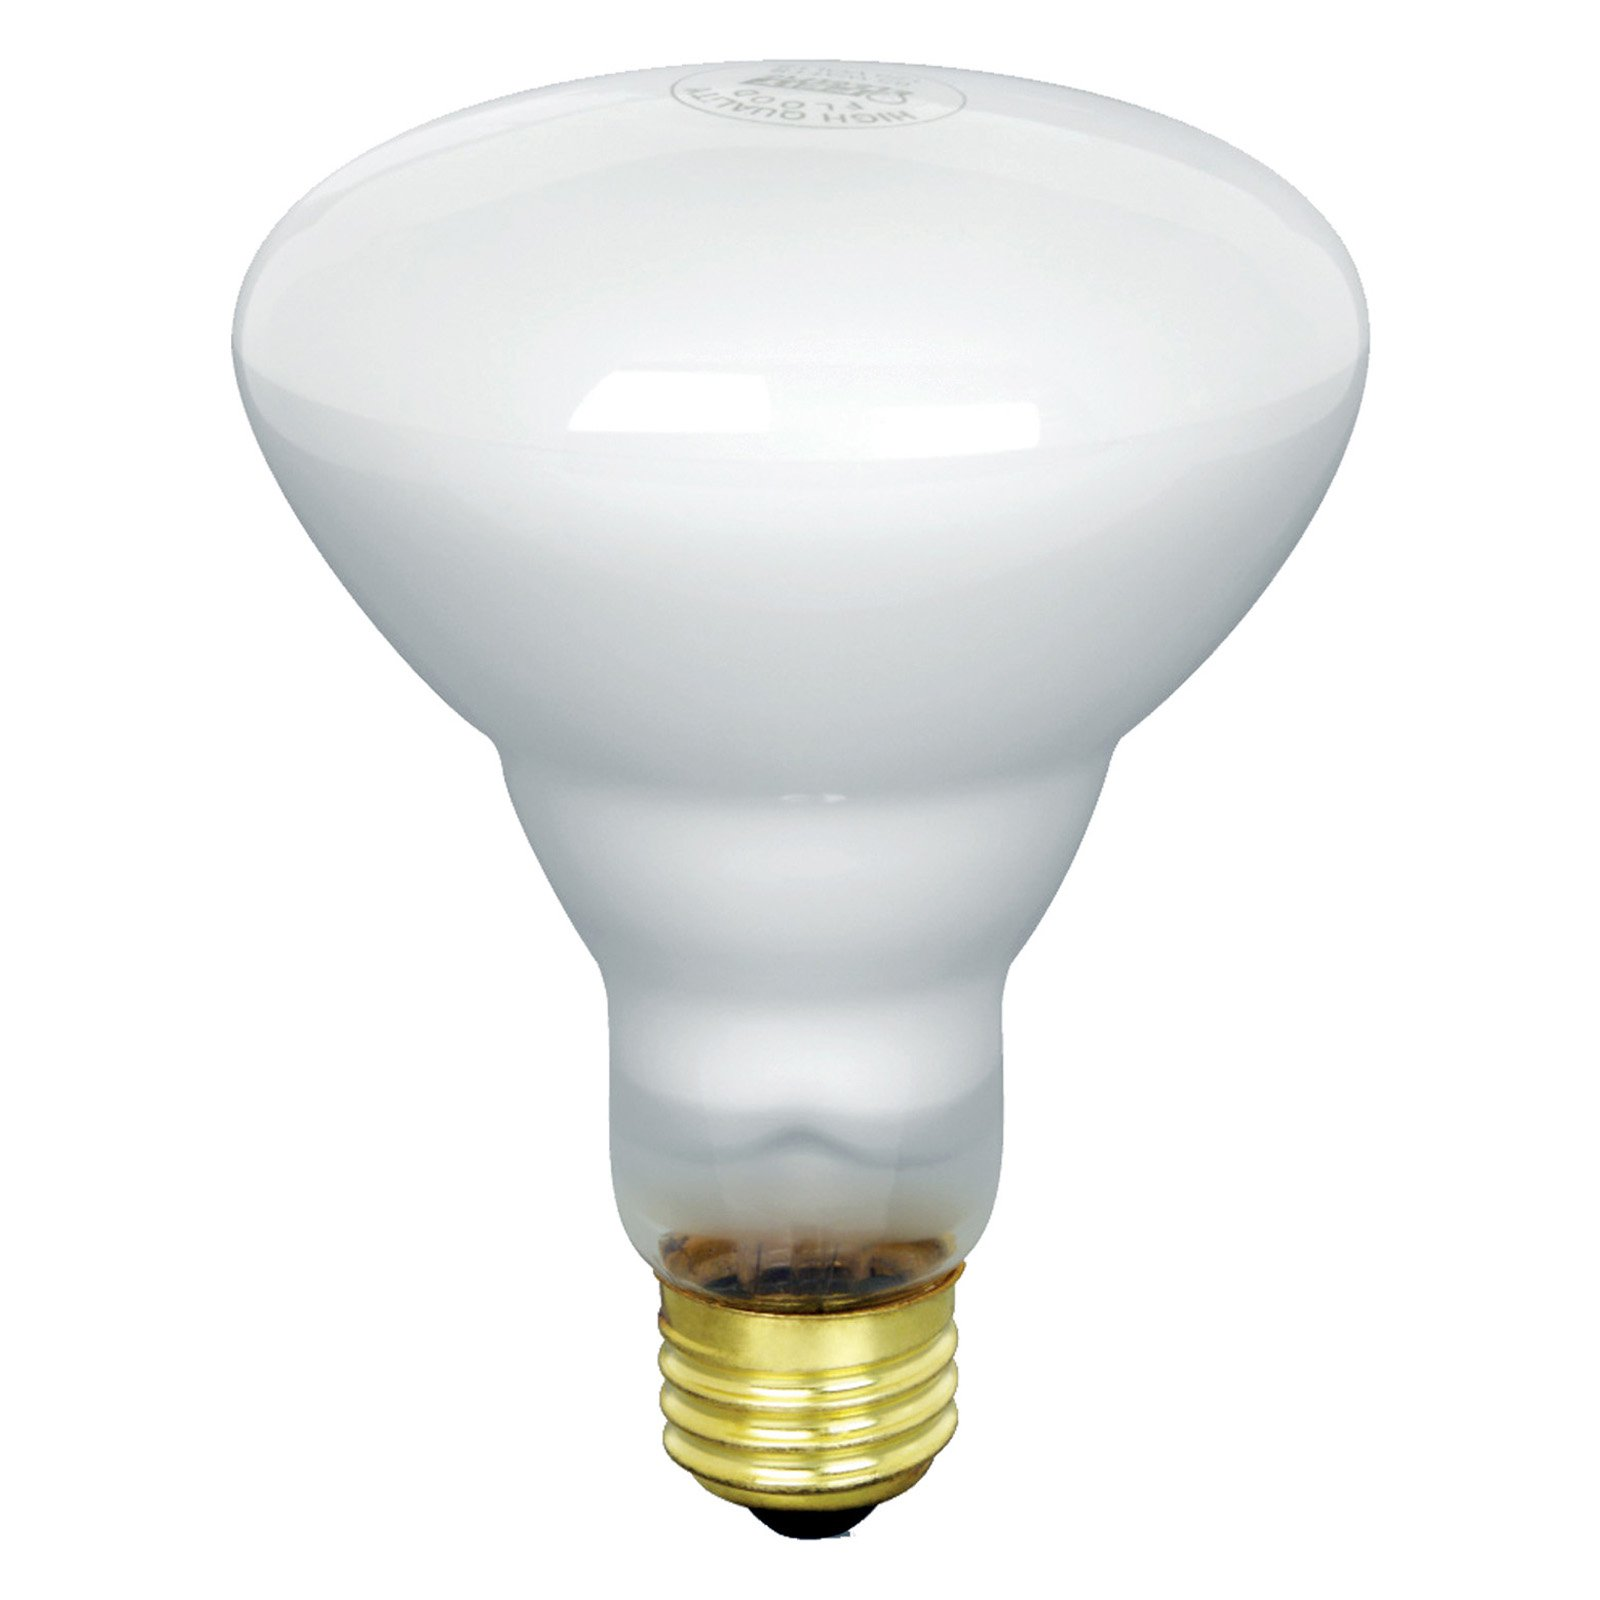 Feit Electric 65W Small Reflector Light Bulb - 12 pk.